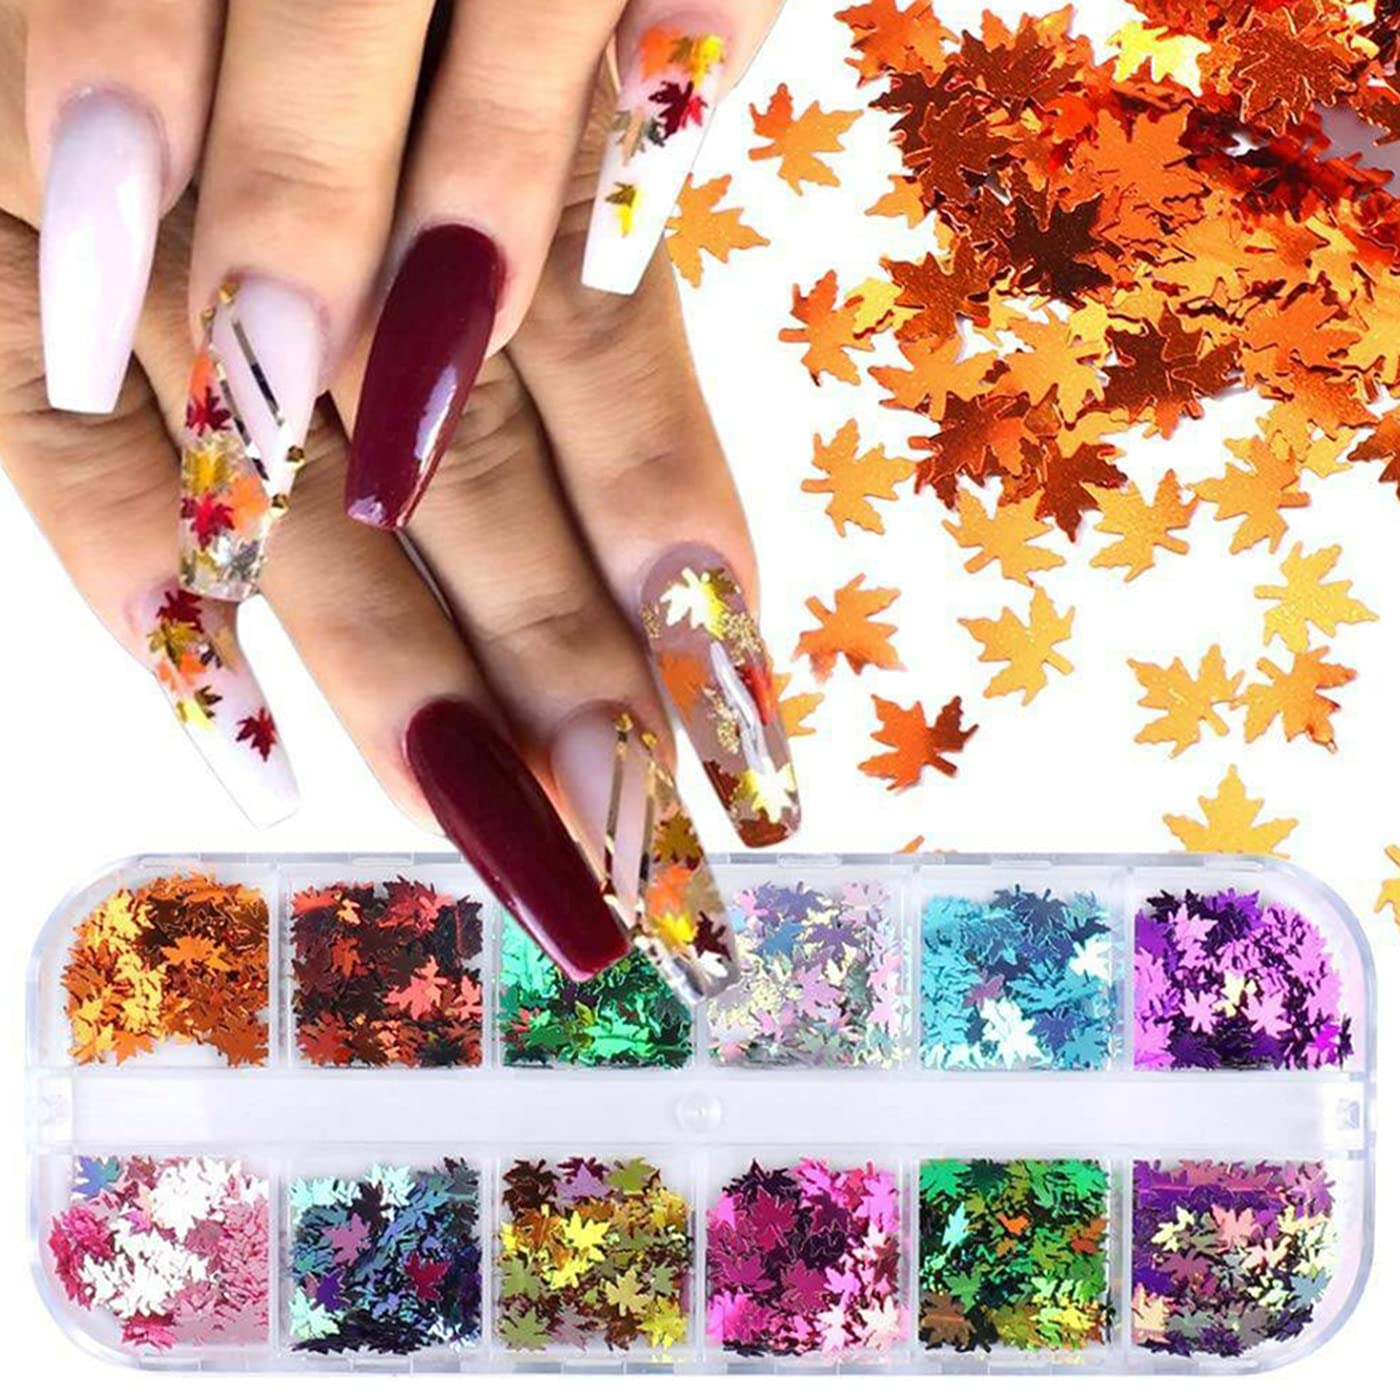 Holographic New color Maple Leaf Nail Art Glitter Colo 67% OFF of fixed price 12 Sequins Grids 3D